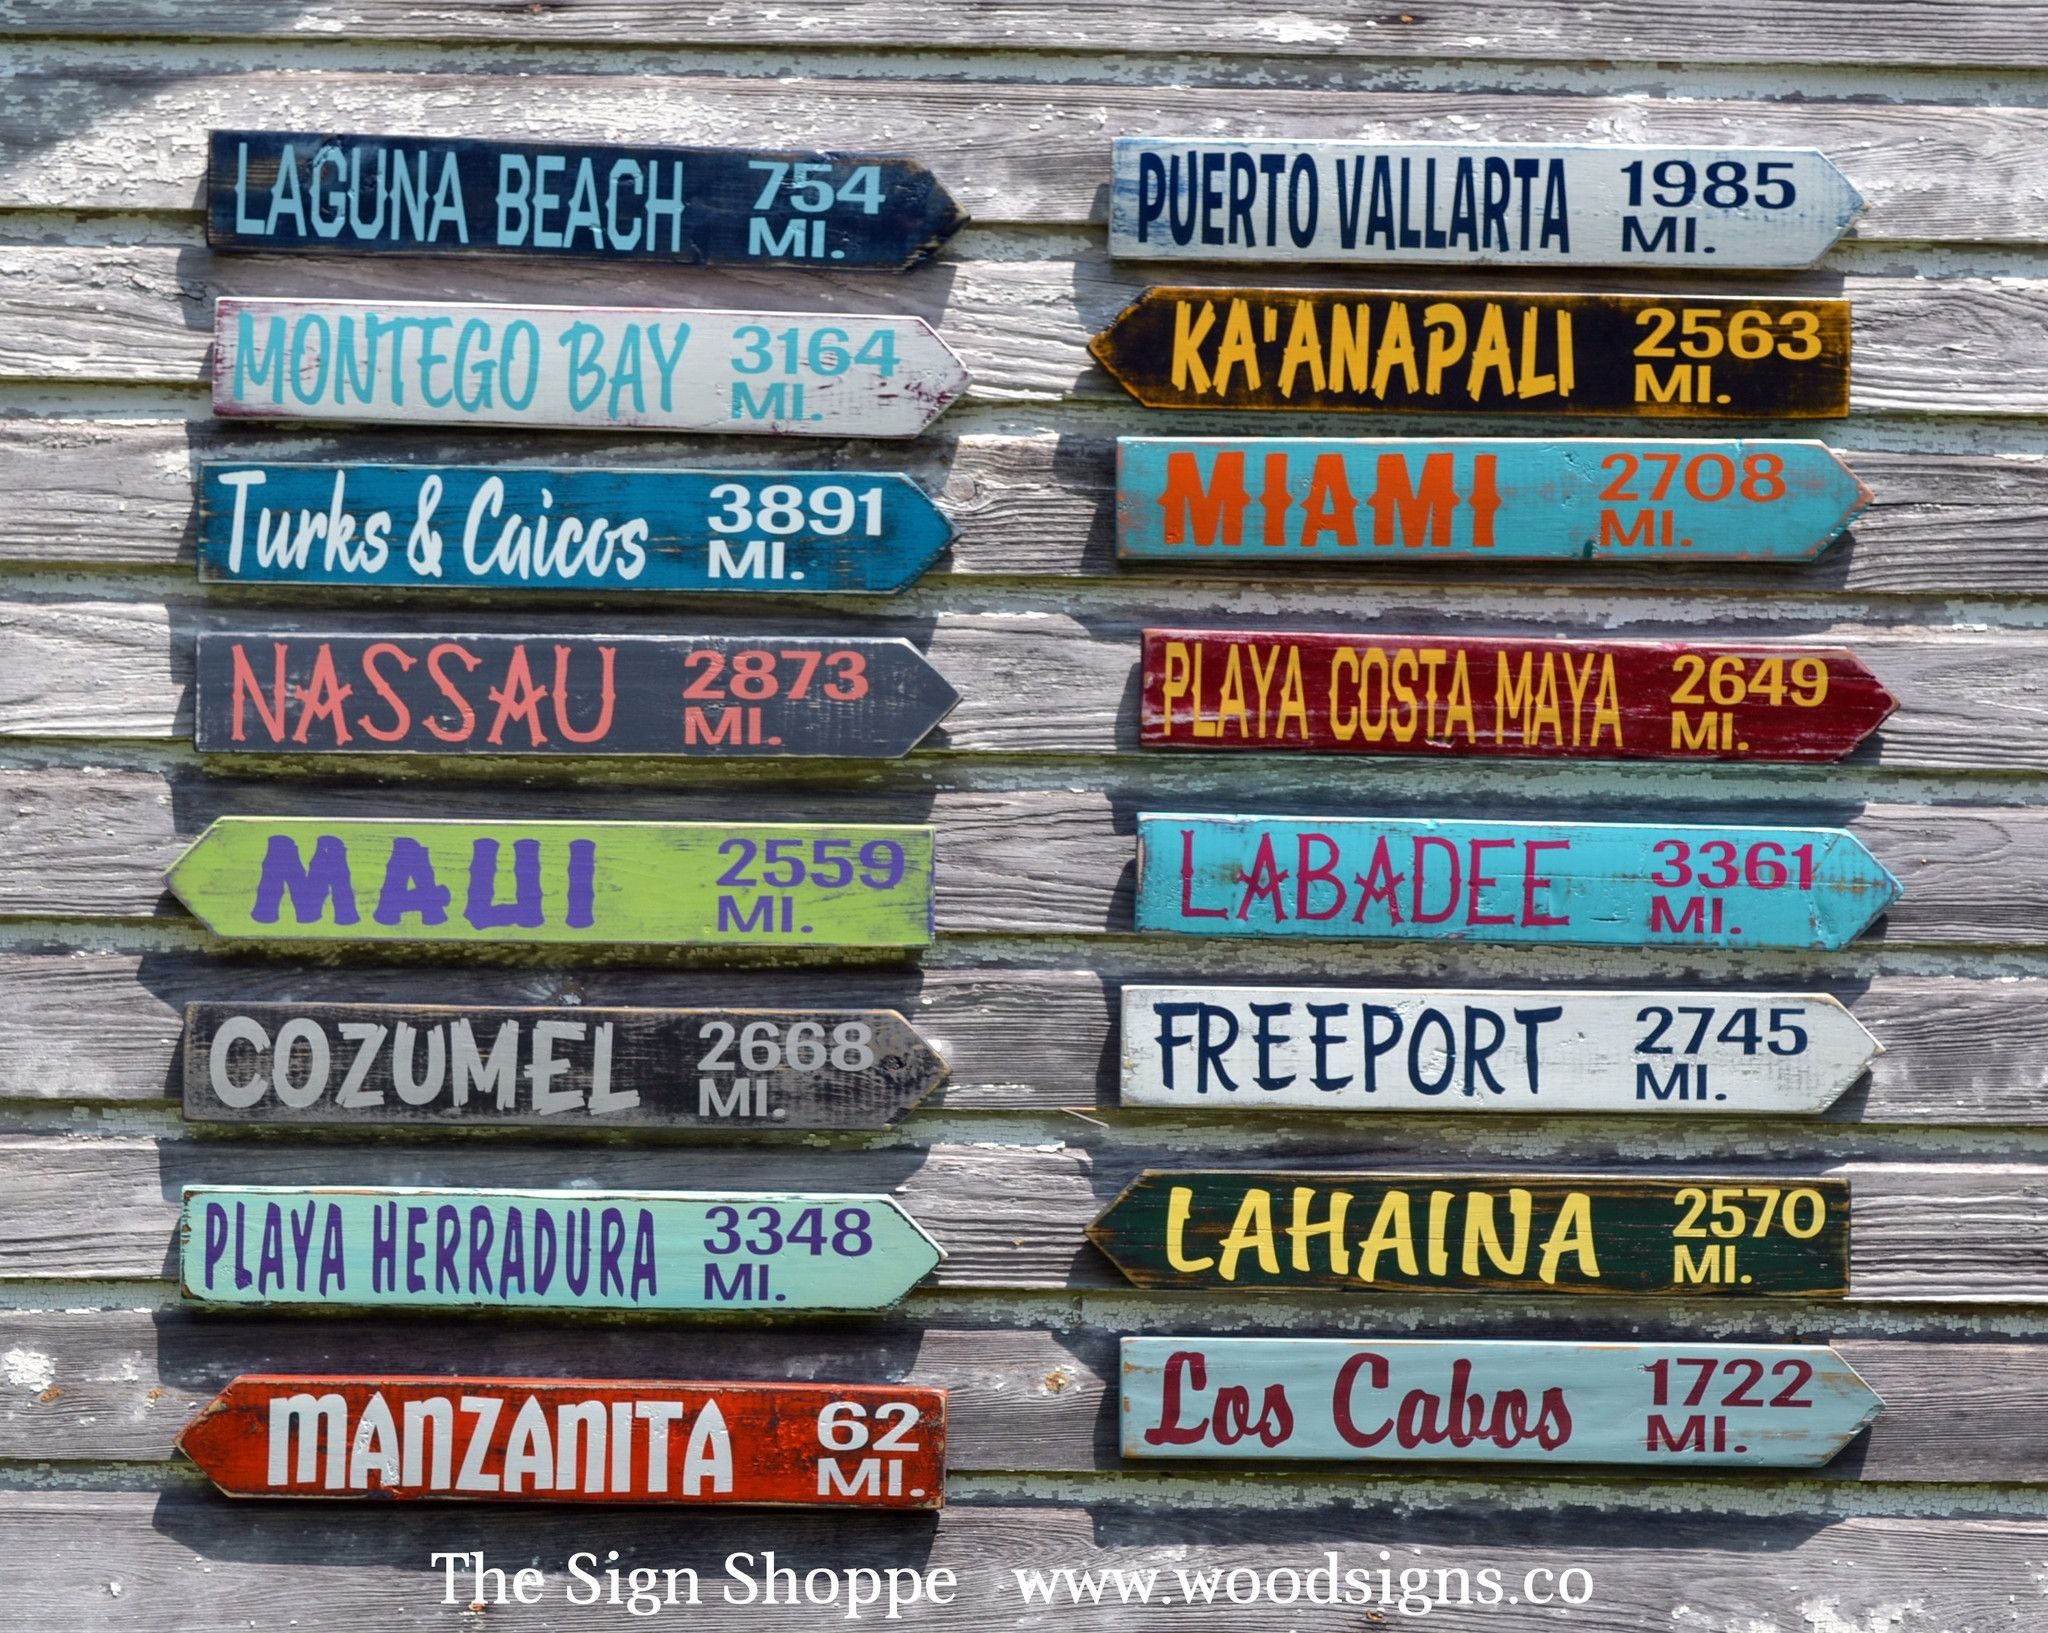 Beach Signs Decor Extraordinary Outdoor Decor Yard Sign City Mileage Arrow Customized Backyard 2018